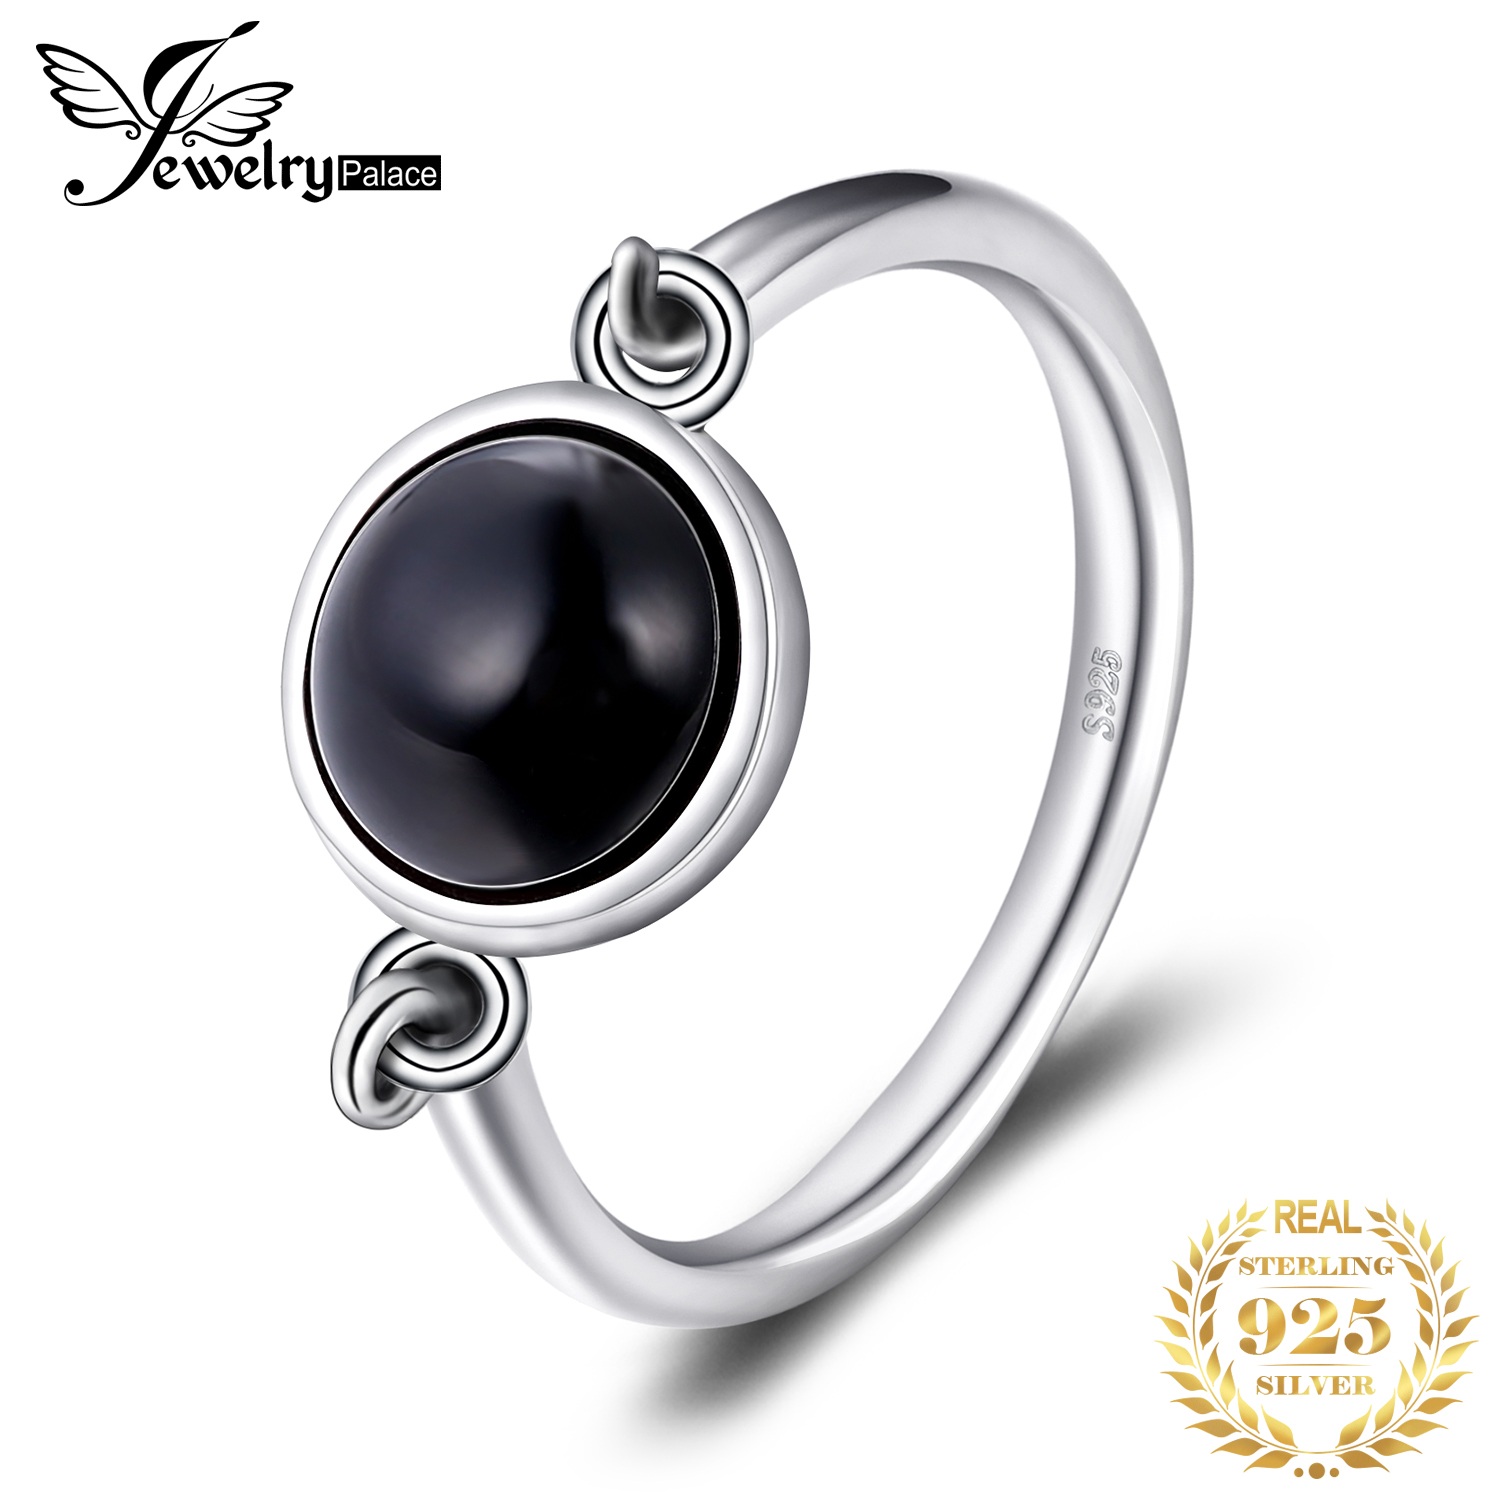 JewelryPalace Genuine Black Onyx Ring Solitaire 925 Sterling Silver Rings For Women Engagement Ring Silver 925 Gemstones Jewelry